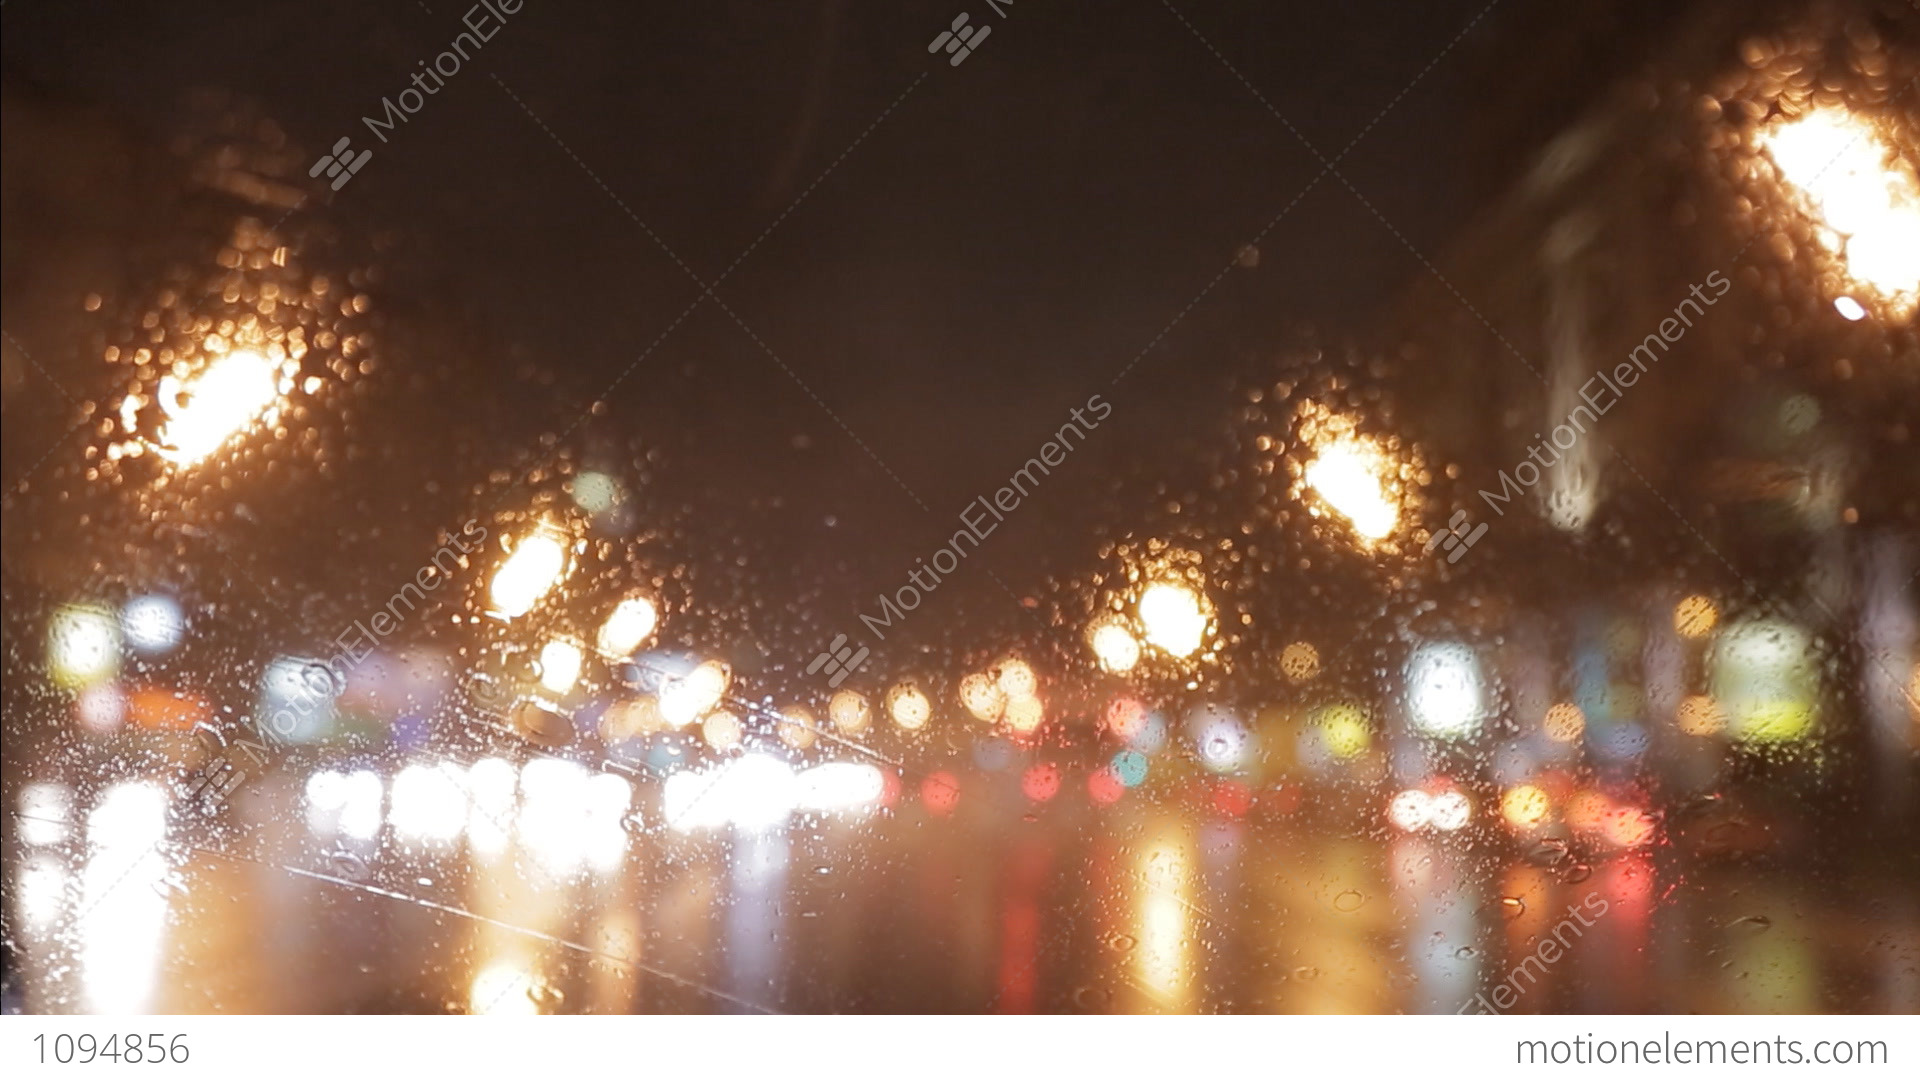 car window rain night background defocused in motion stock video footage 1094856. Black Bedroom Furniture Sets. Home Design Ideas